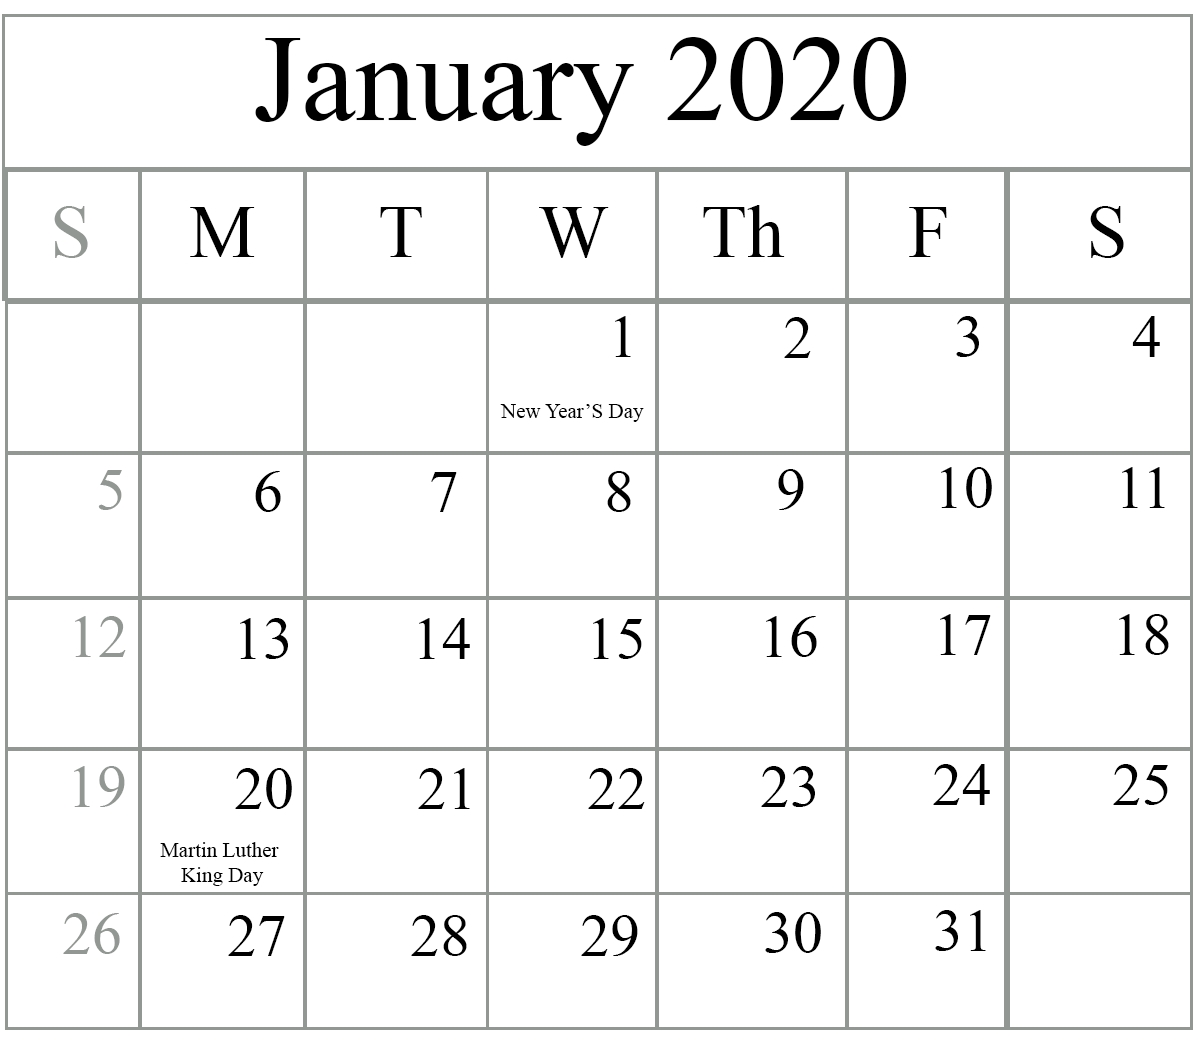 Free January 2020 Printable Calendar In Pdf, Excel & Word-January 2020 Calendar Of Events